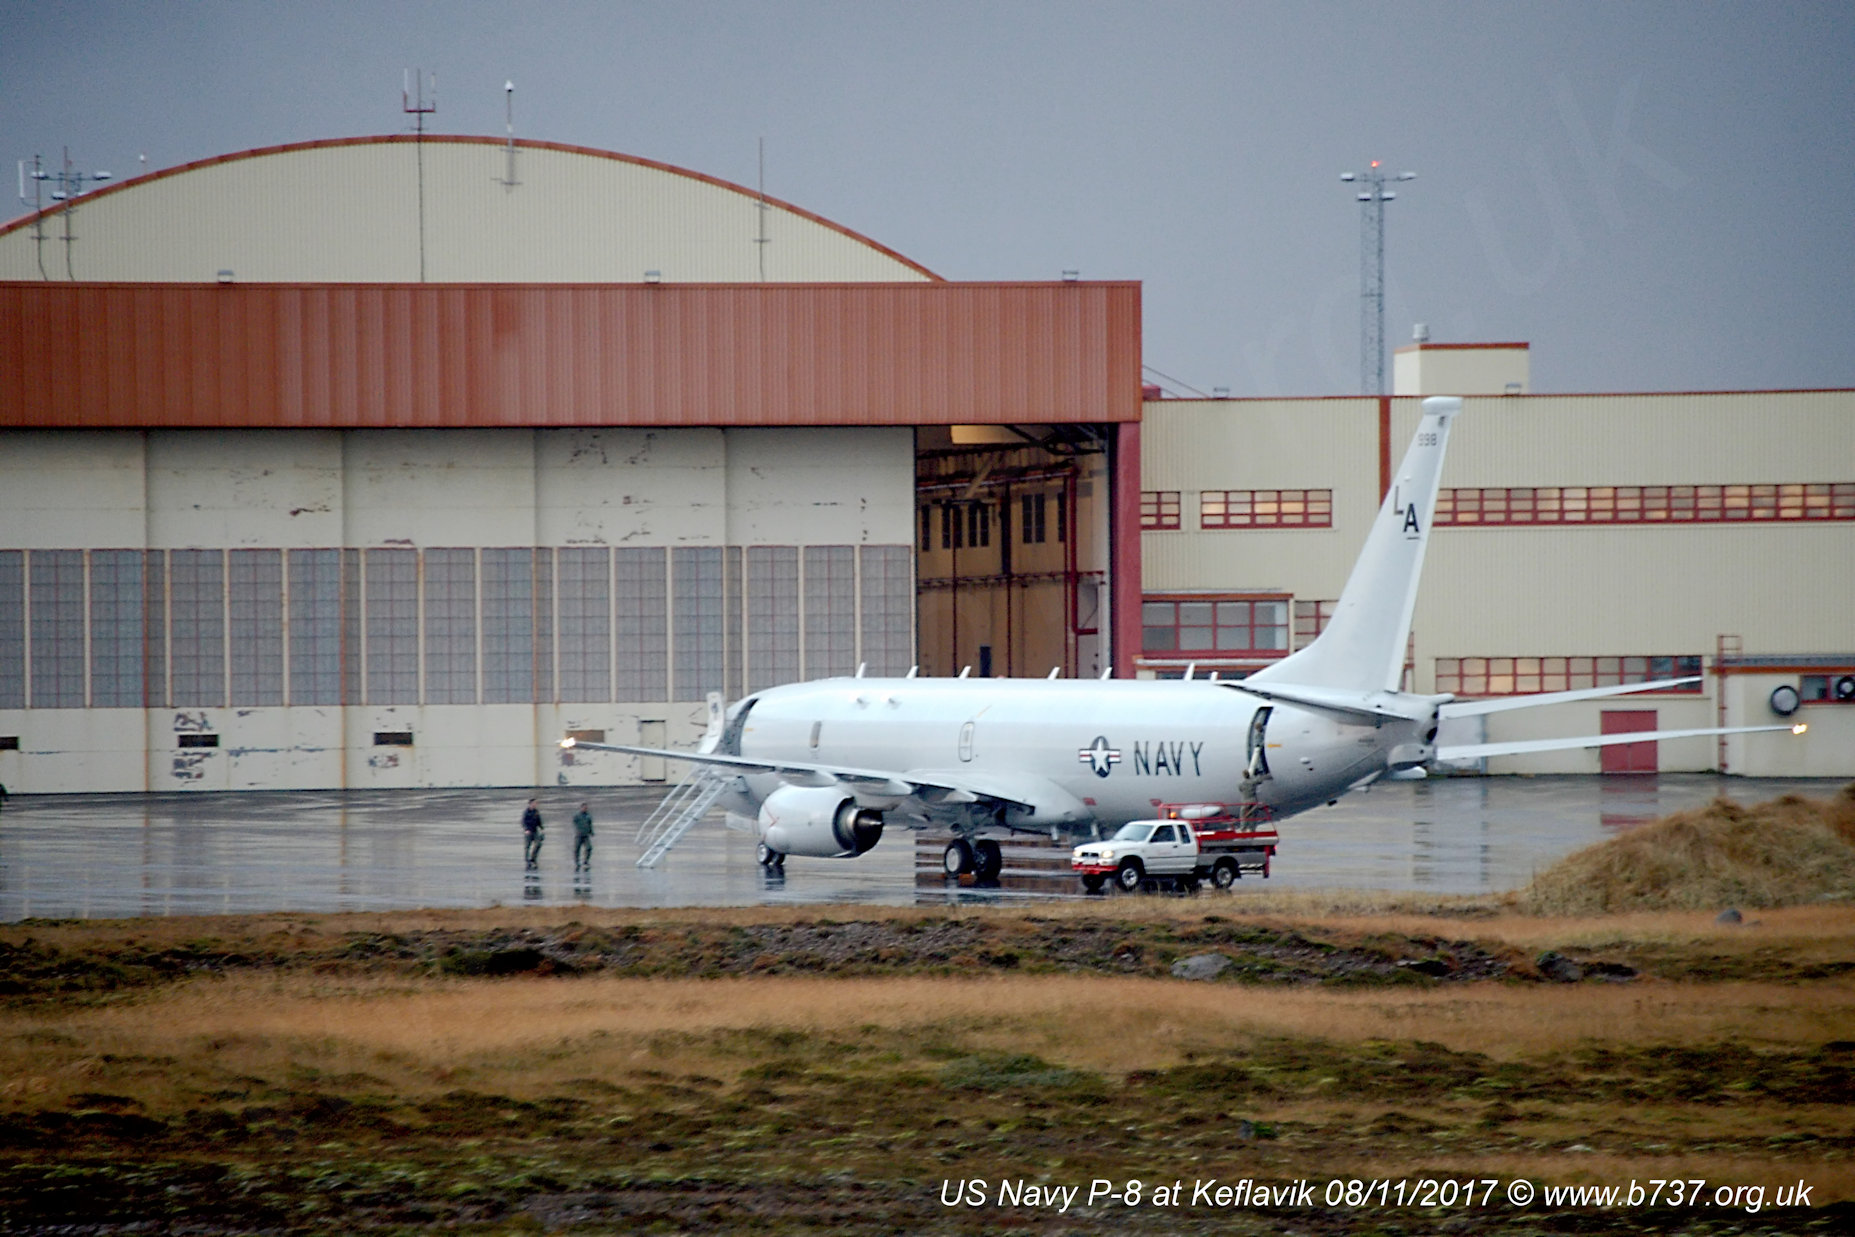 US Navy 737 P-8A 168998 at Keflavik